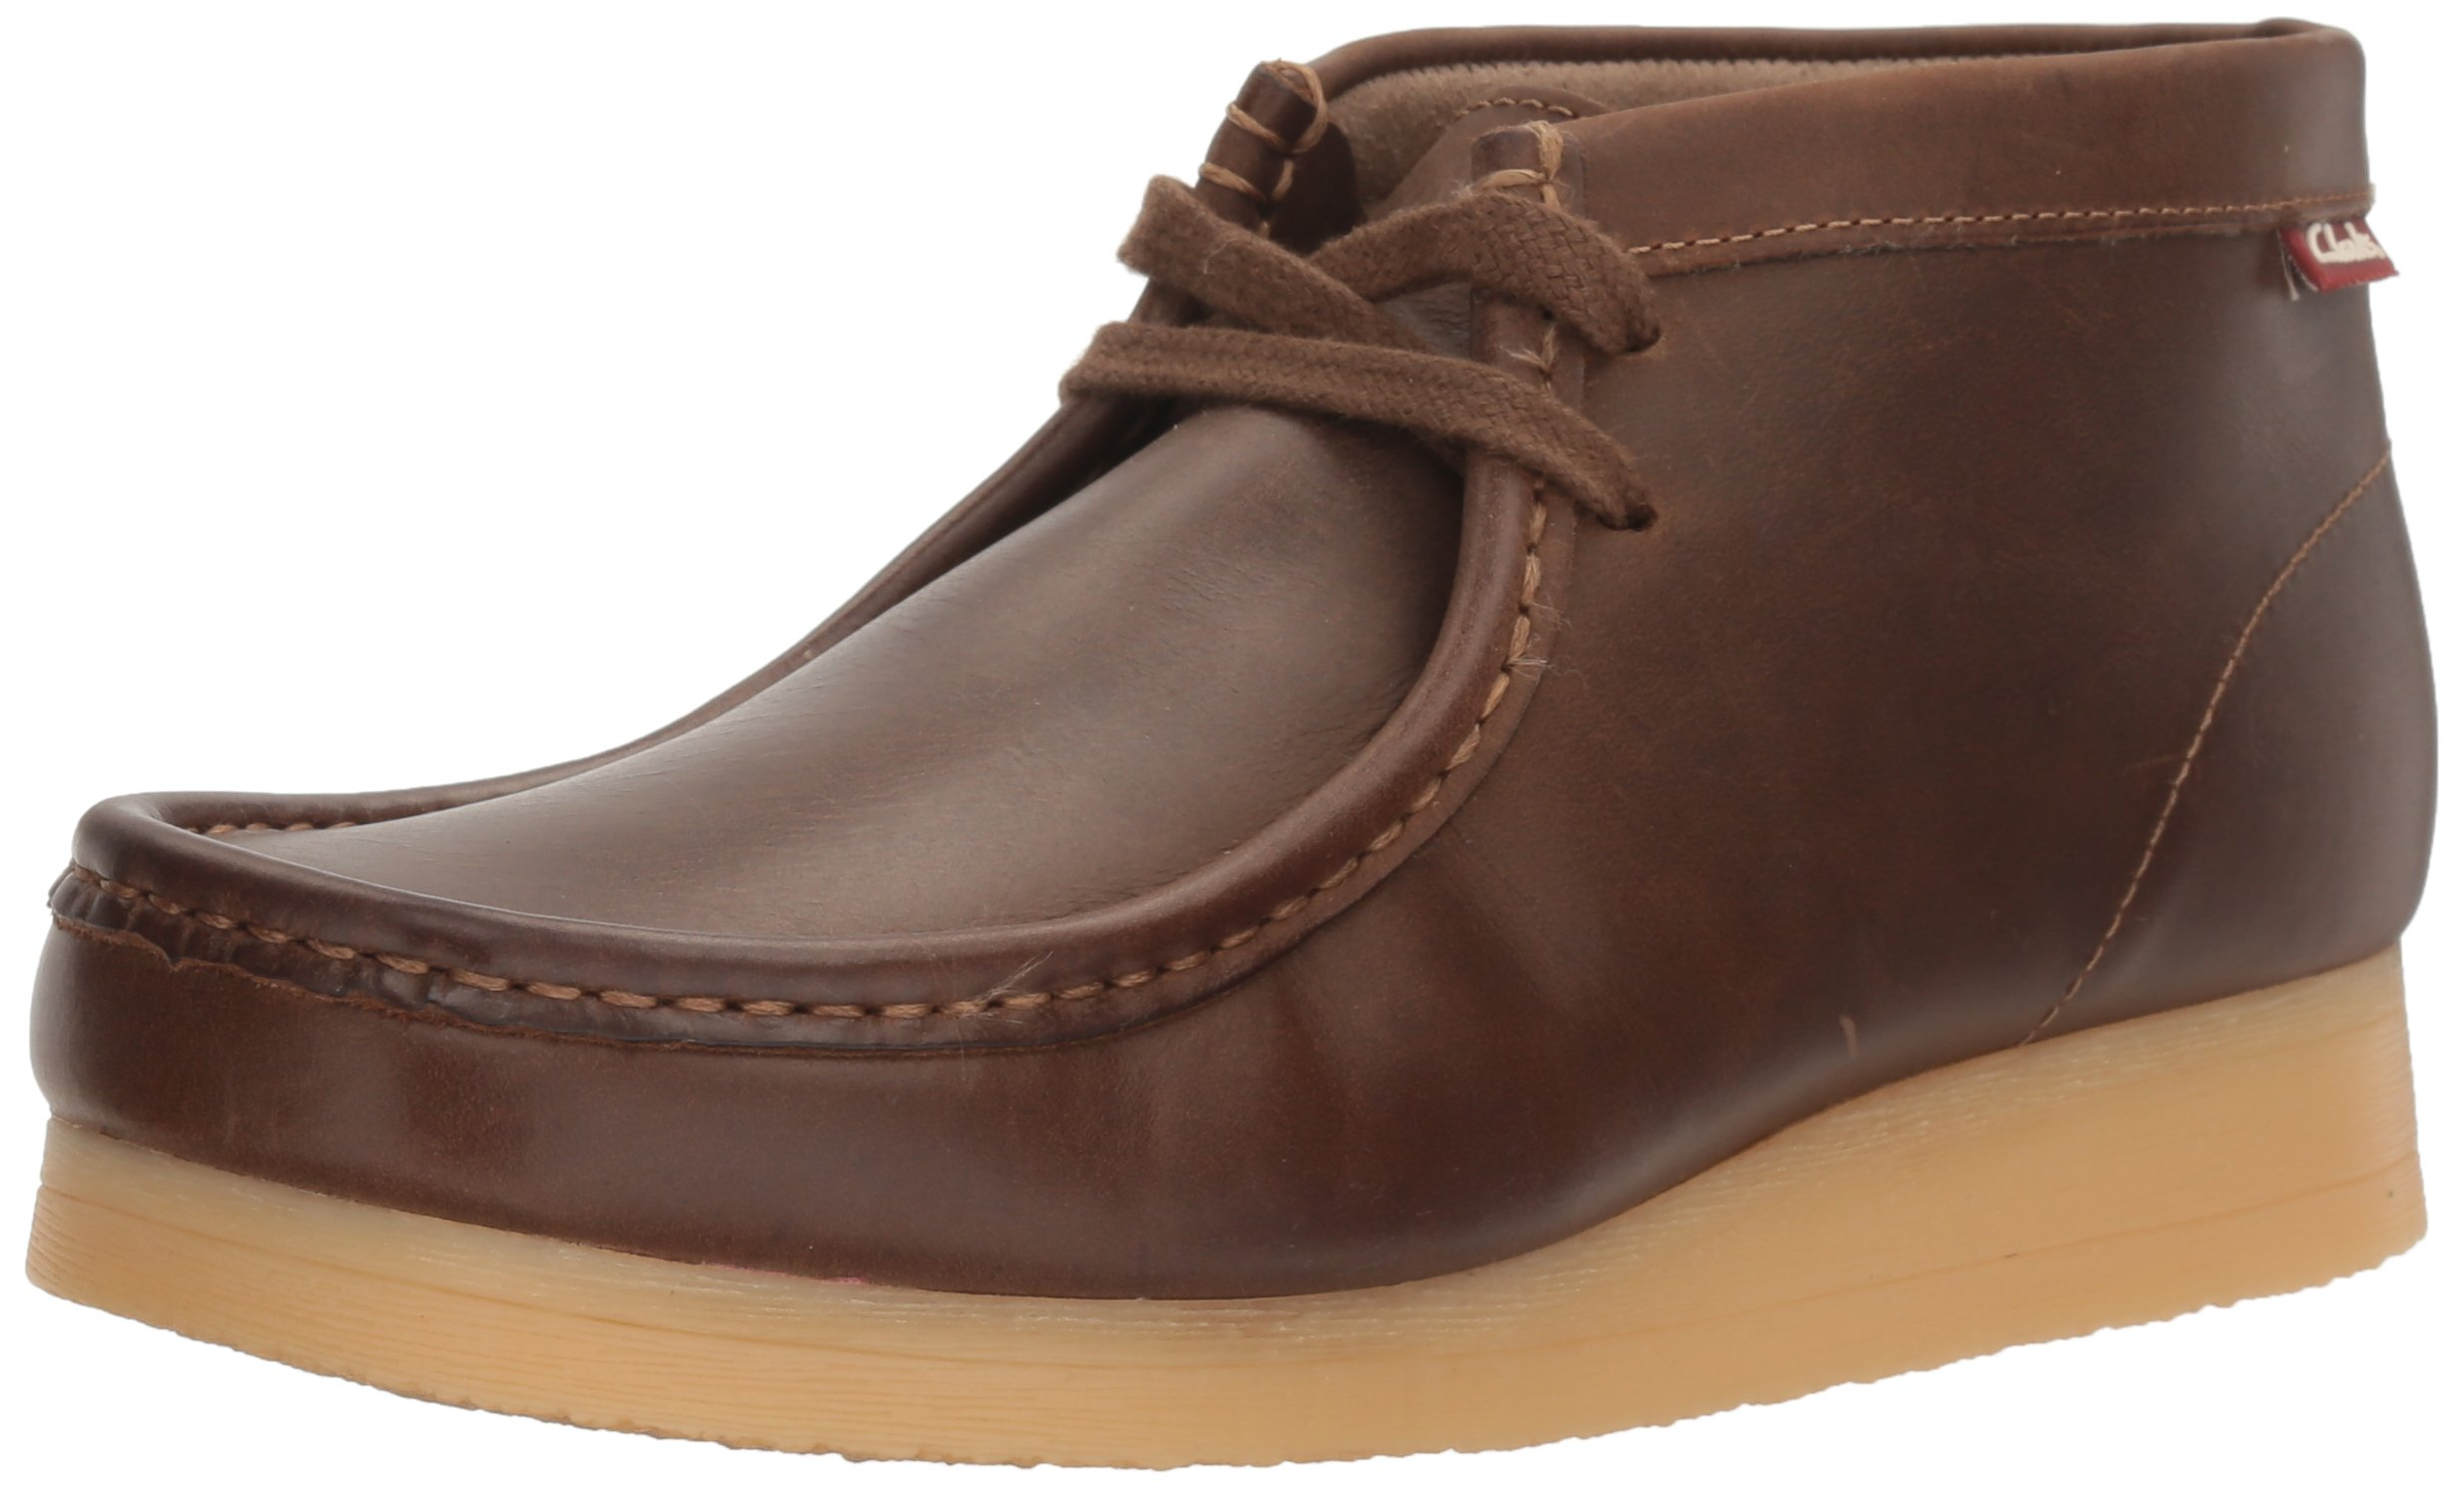 CLARKS Men's Stinson Hi Chukka Boot,Beeswax Leather,8 M US